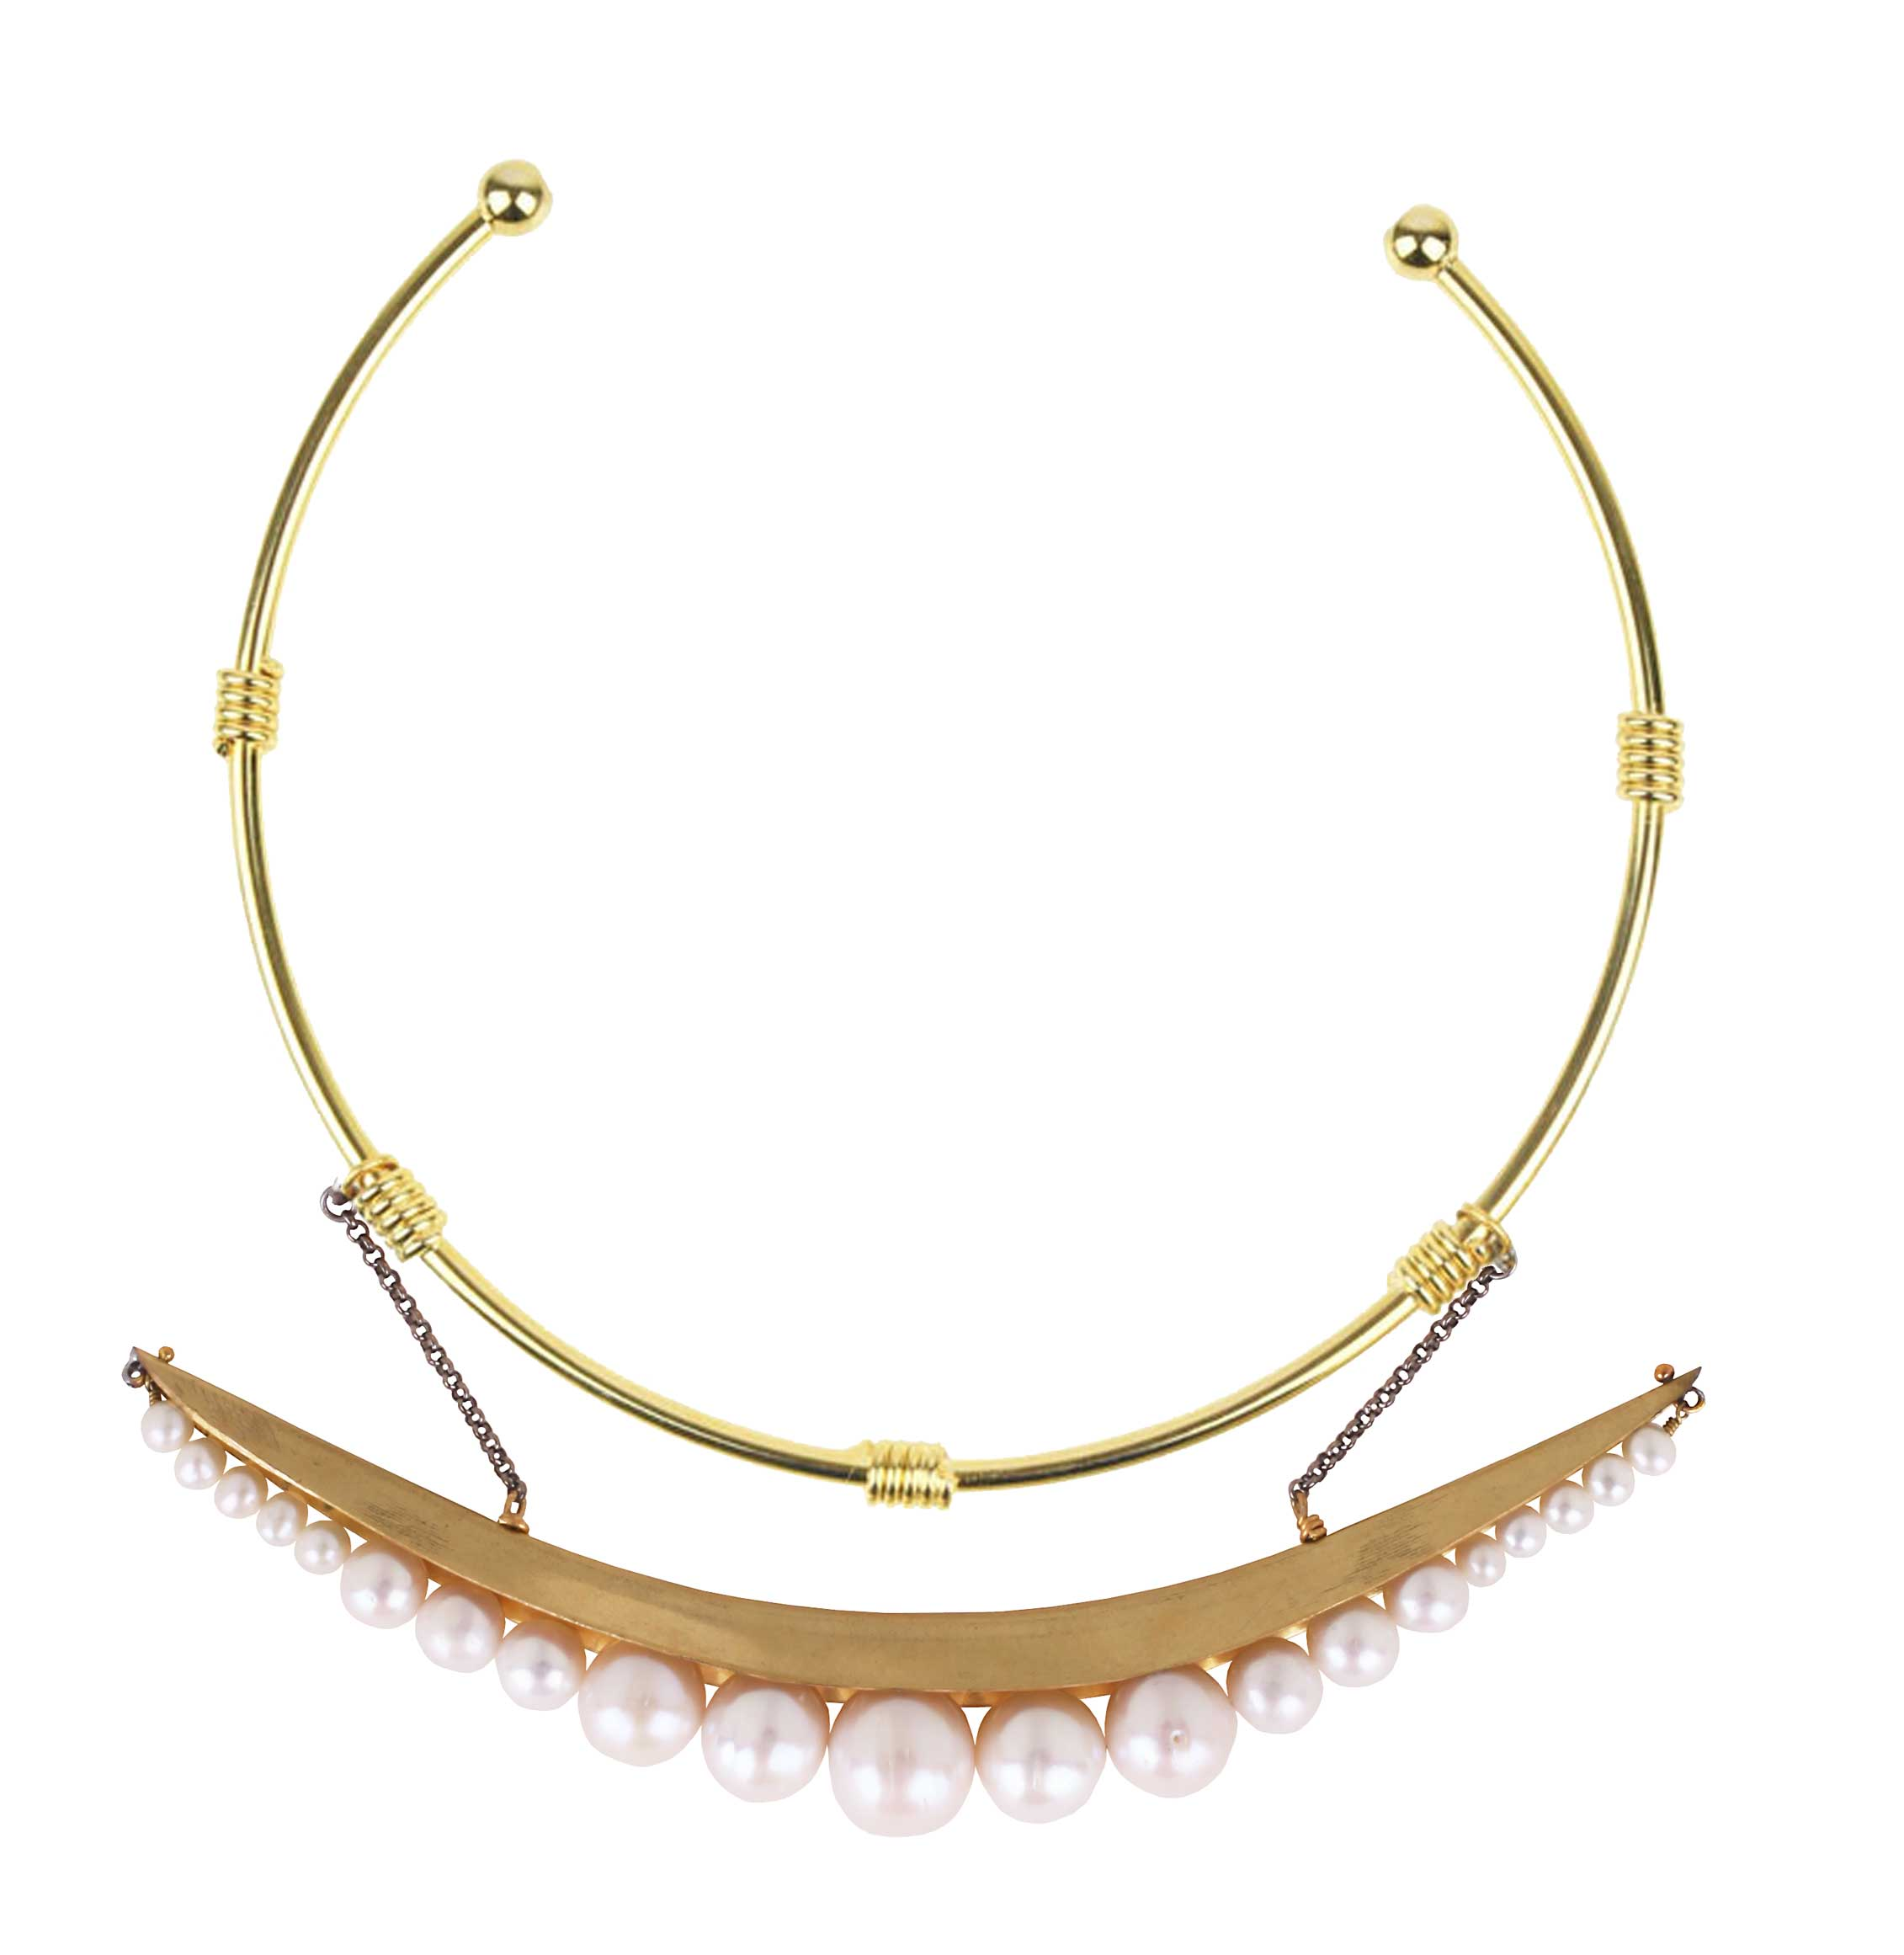 Eclipse White Pearls and Gold Plated Metal Collar Necklace